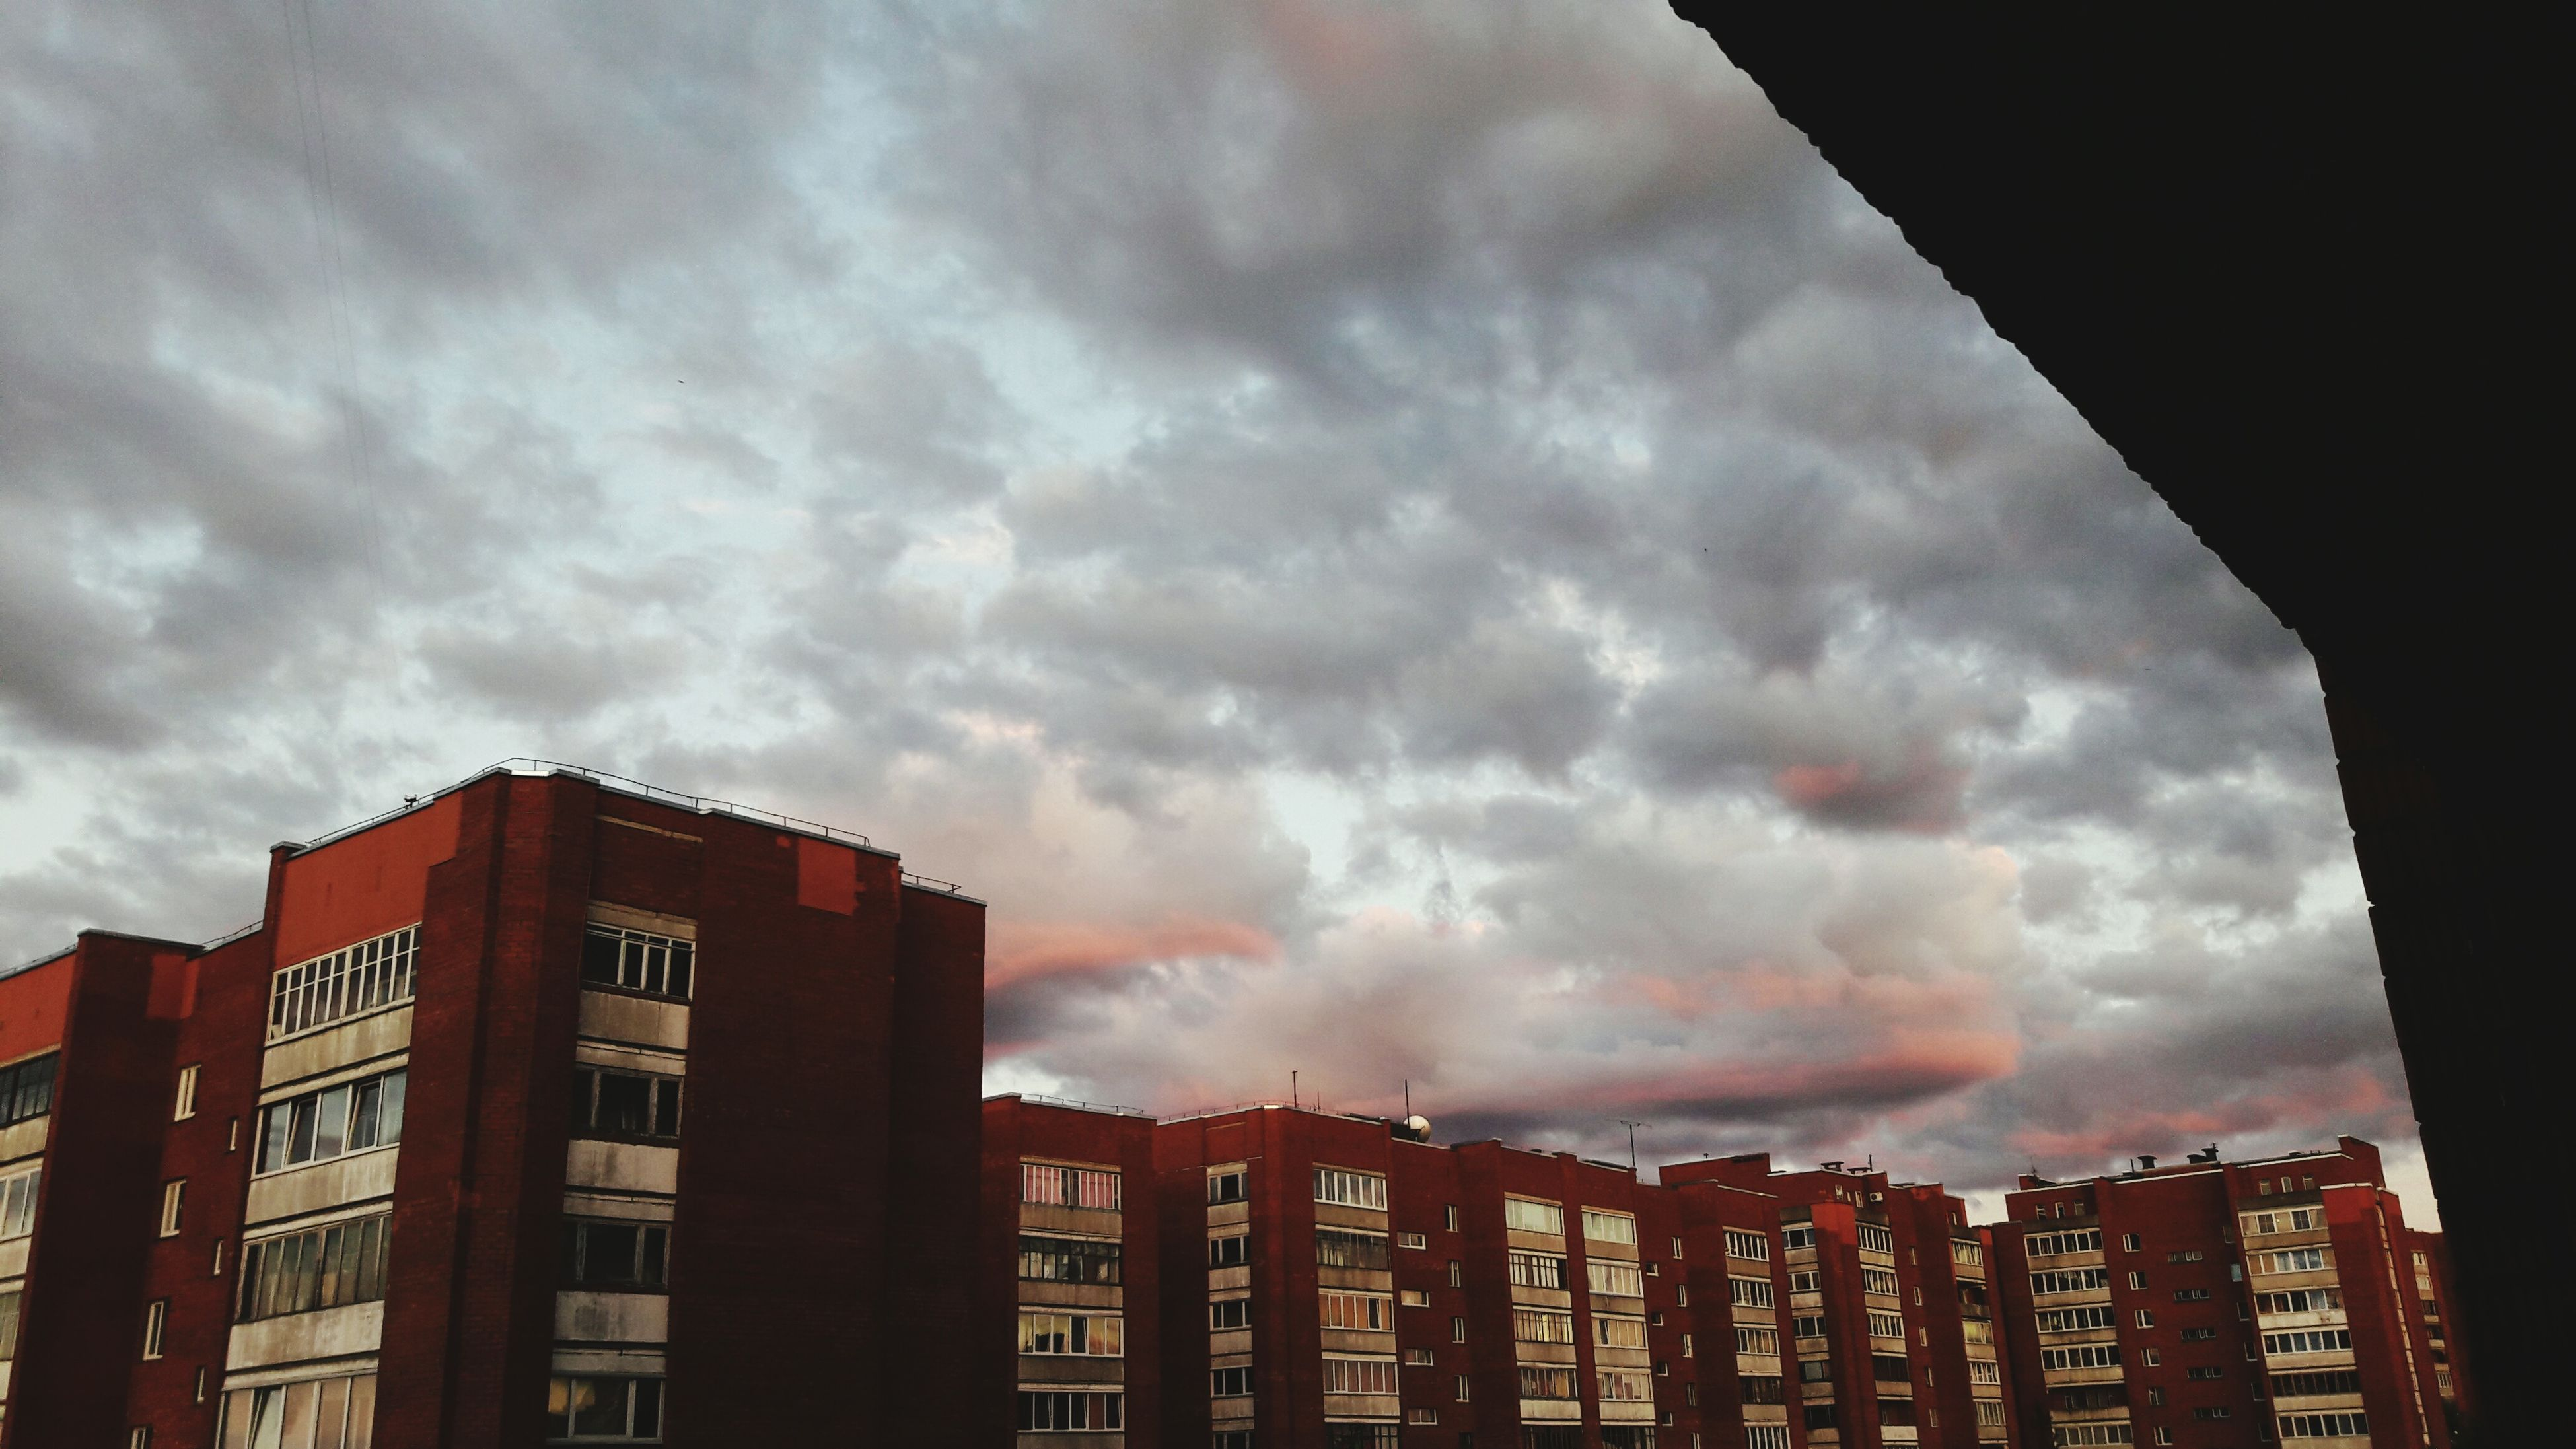 architecture, built structure, building exterior, sky, low angle view, cloud - sky, cloudy, city, building, residential building, weather, residential structure, cloud, overcast, outdoors, no people, high section, dramatic sky, modern, city life, nature